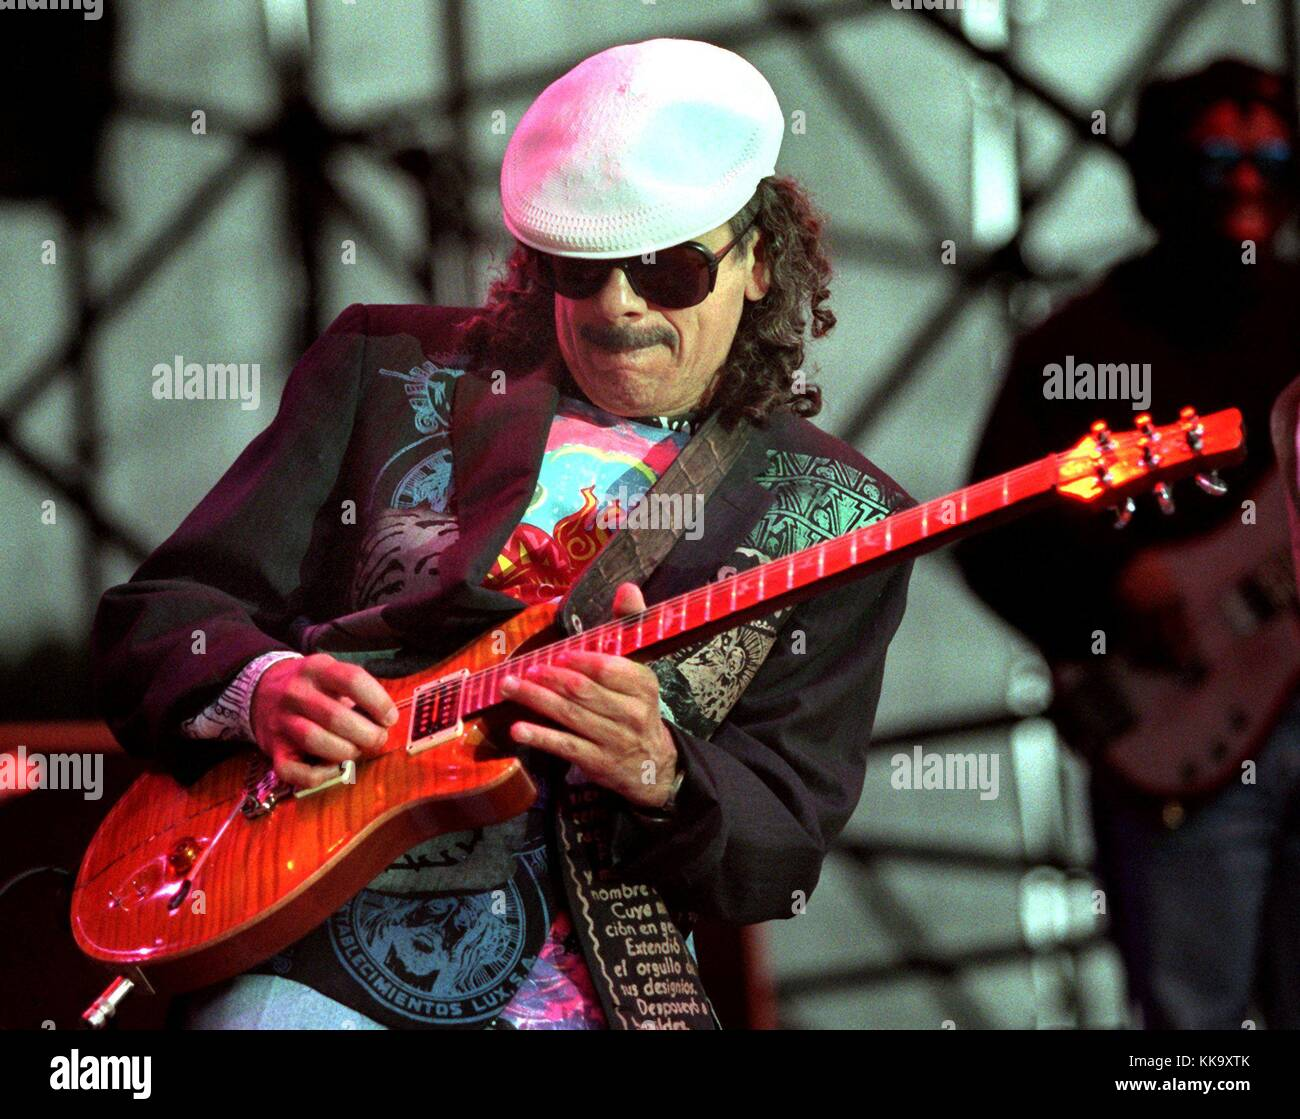 carlos santana guitar stock photos carlos santana guitar stock images alamy. Black Bedroom Furniture Sets. Home Design Ideas